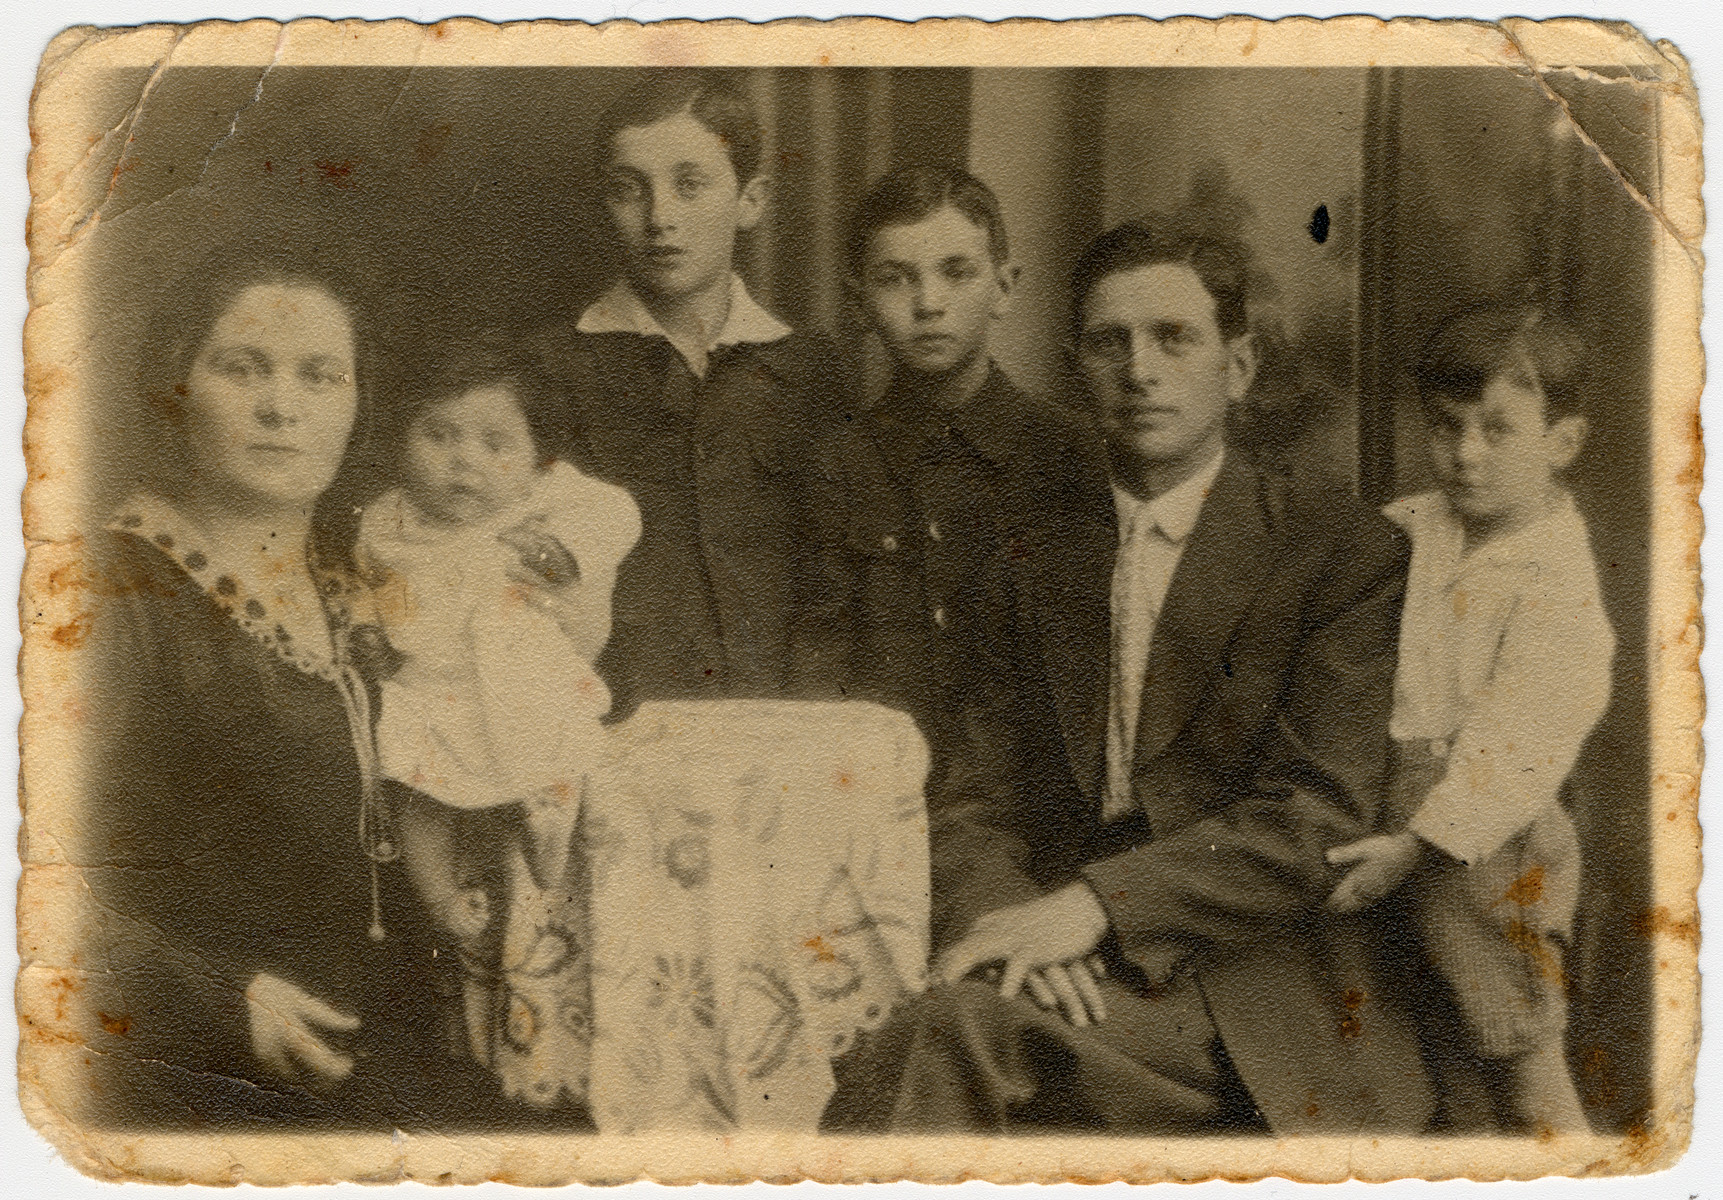 Prewar photograph of the Klinger family.  Pictured are Rozja-Laja, Bala, Josef, Dawid, Joel and Szlamek Klinger.  On the reverse side of the photograph is an inscription from Dawid and Szlamek sayng they are sending this card as a memory of their family.